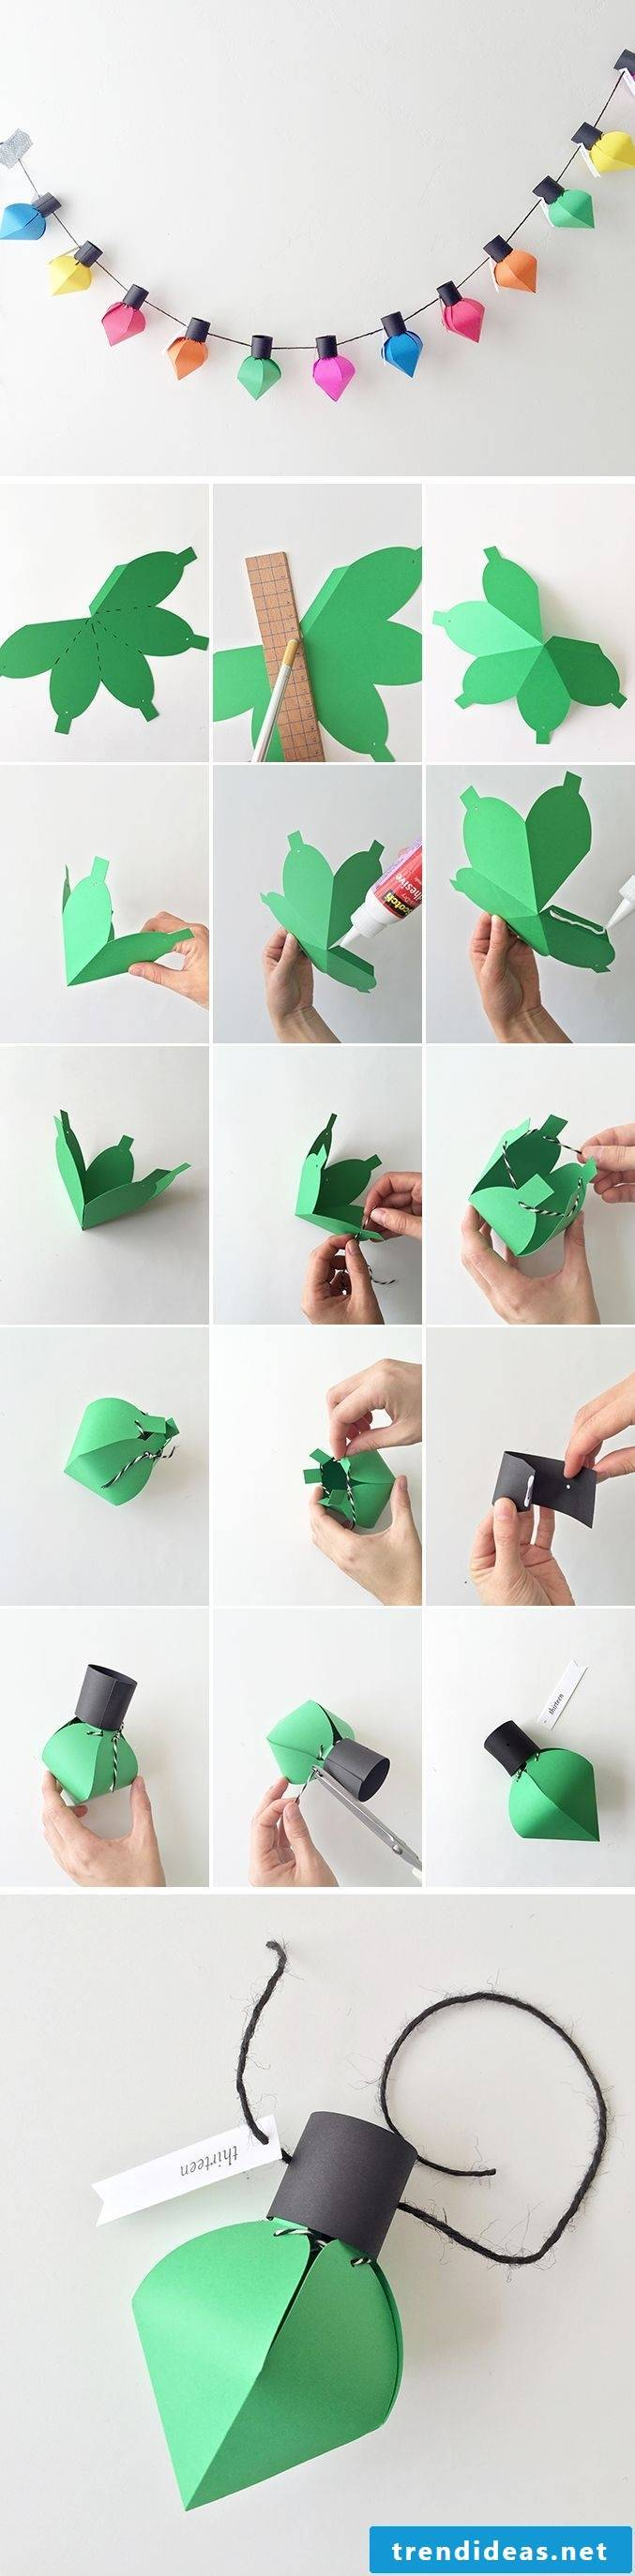 Make advent calendars yourself Instructions and template for cutting